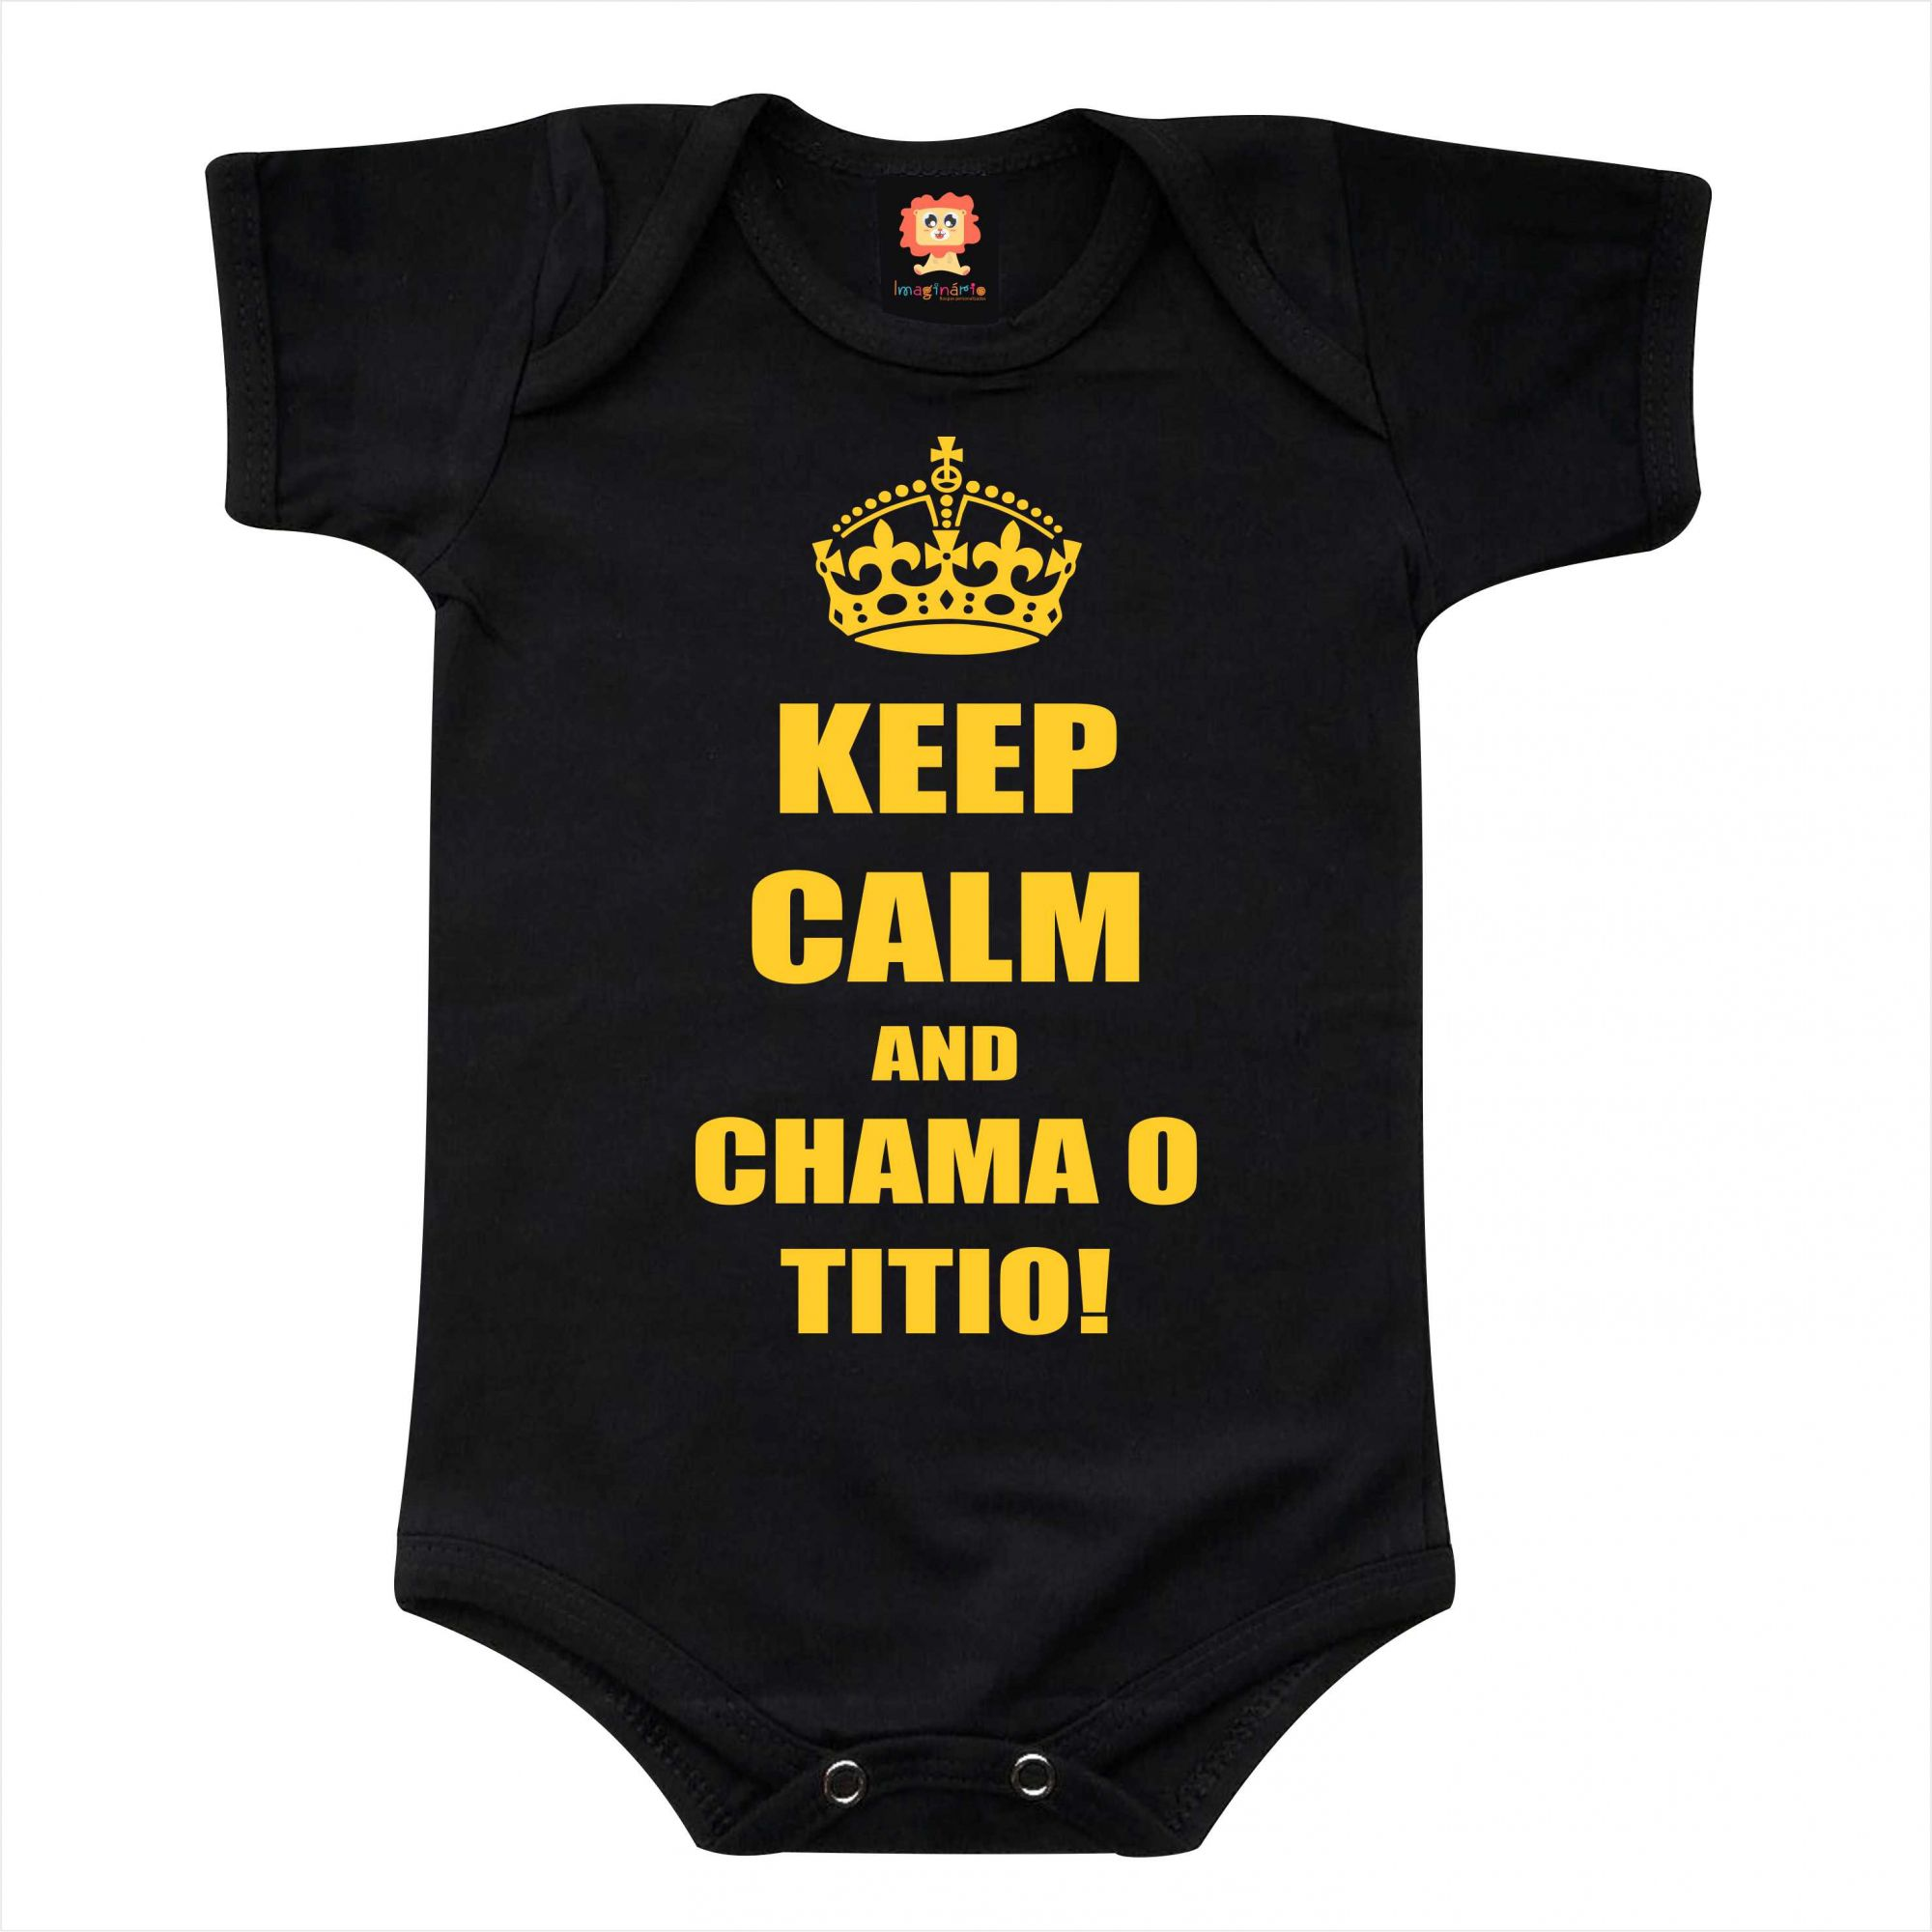 Body de Bebê ou Camiseta Keep Calm And Chama o Titio